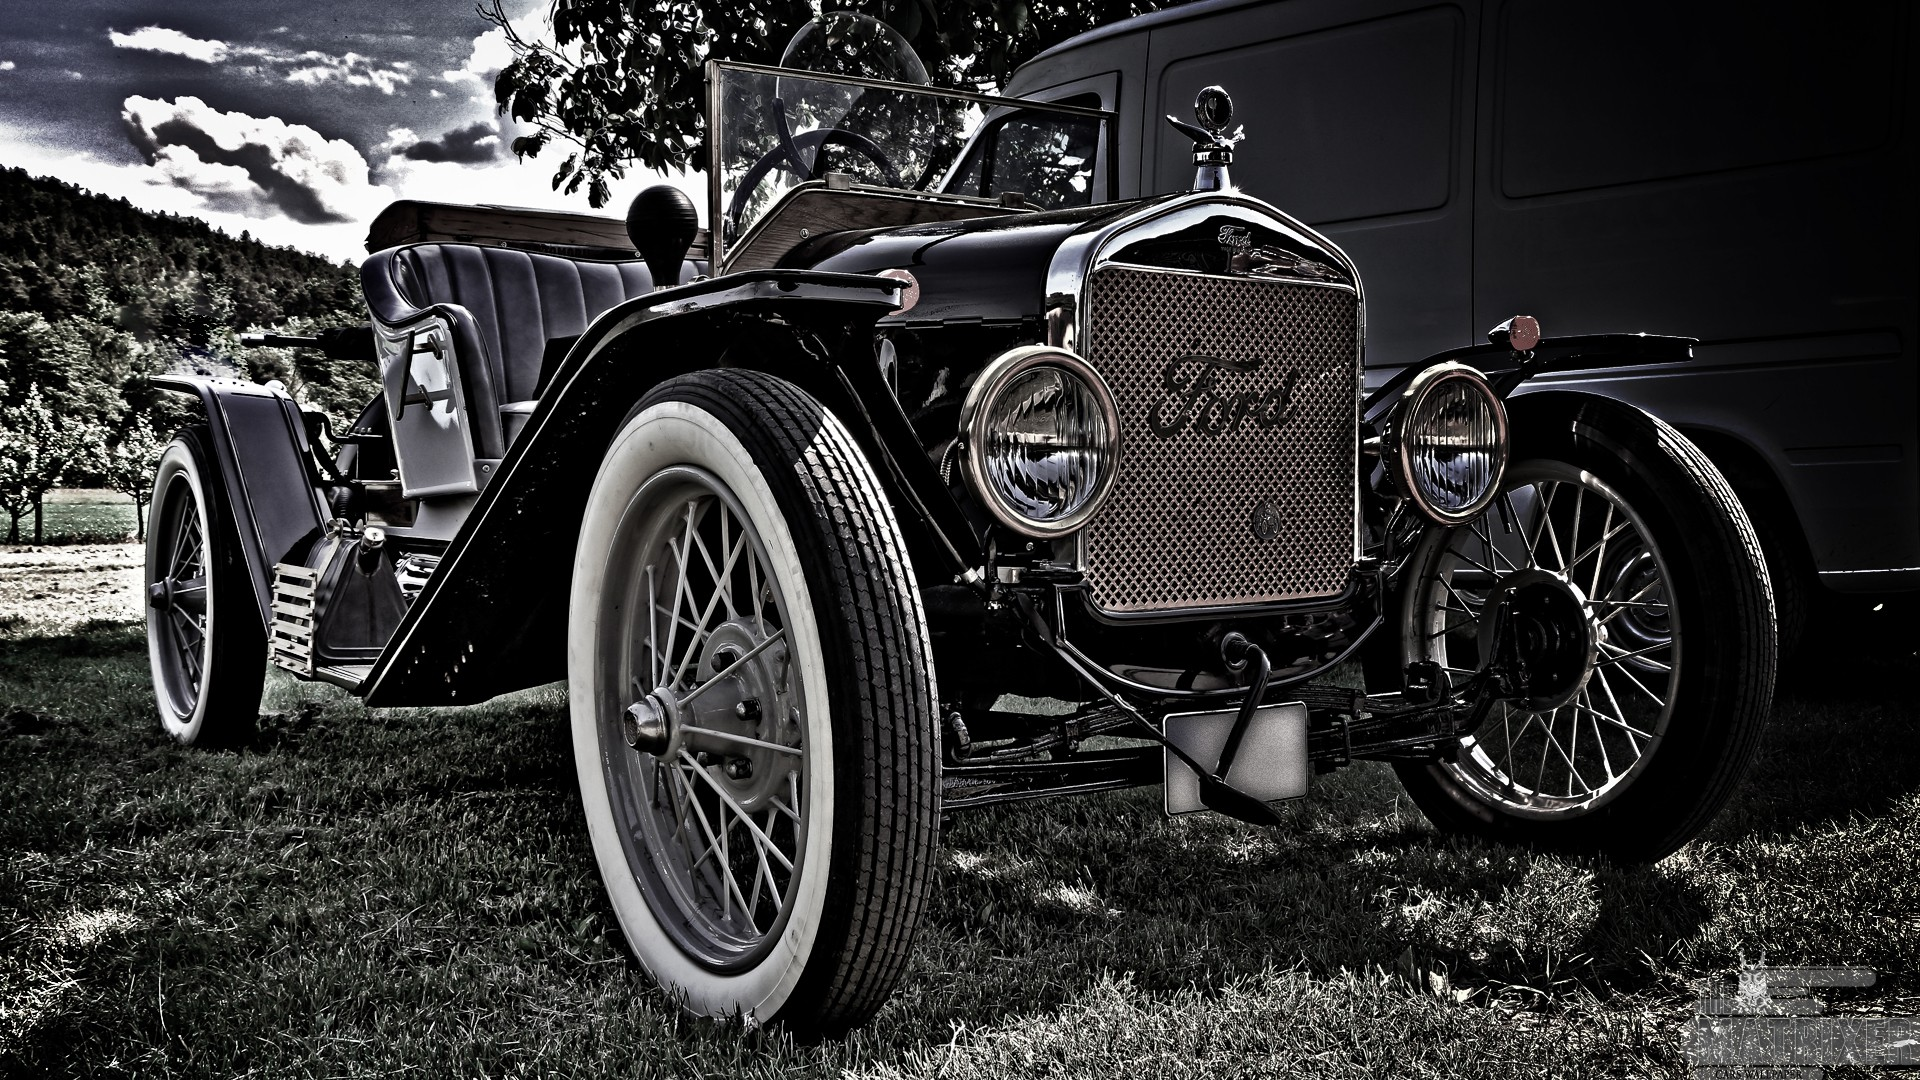 Muscle Car Wallpaper Black And White The Matrixer Wallpaper Download Oldtimer Muscle Car